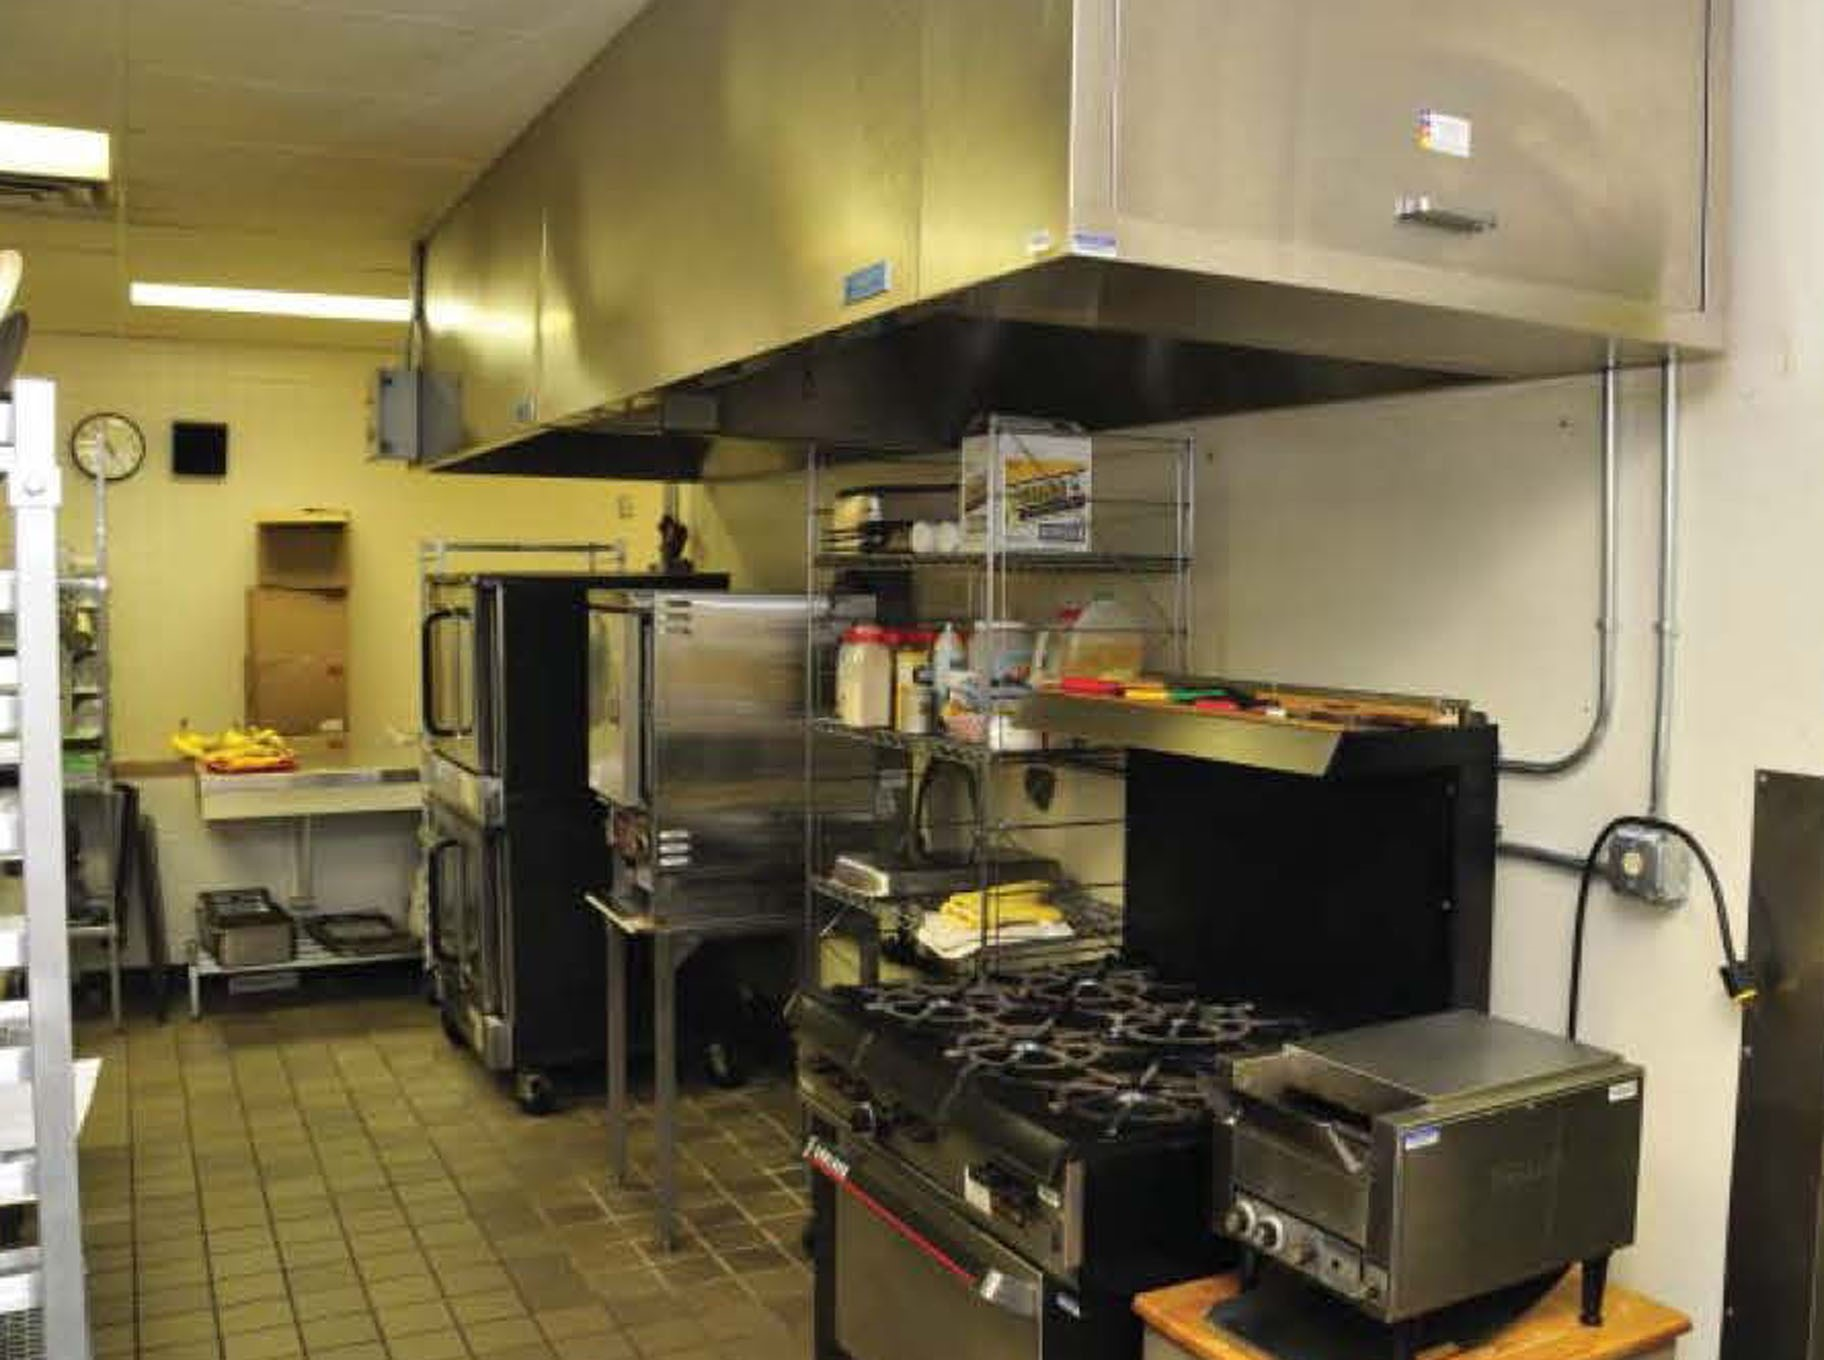 wide shot of kitchen area